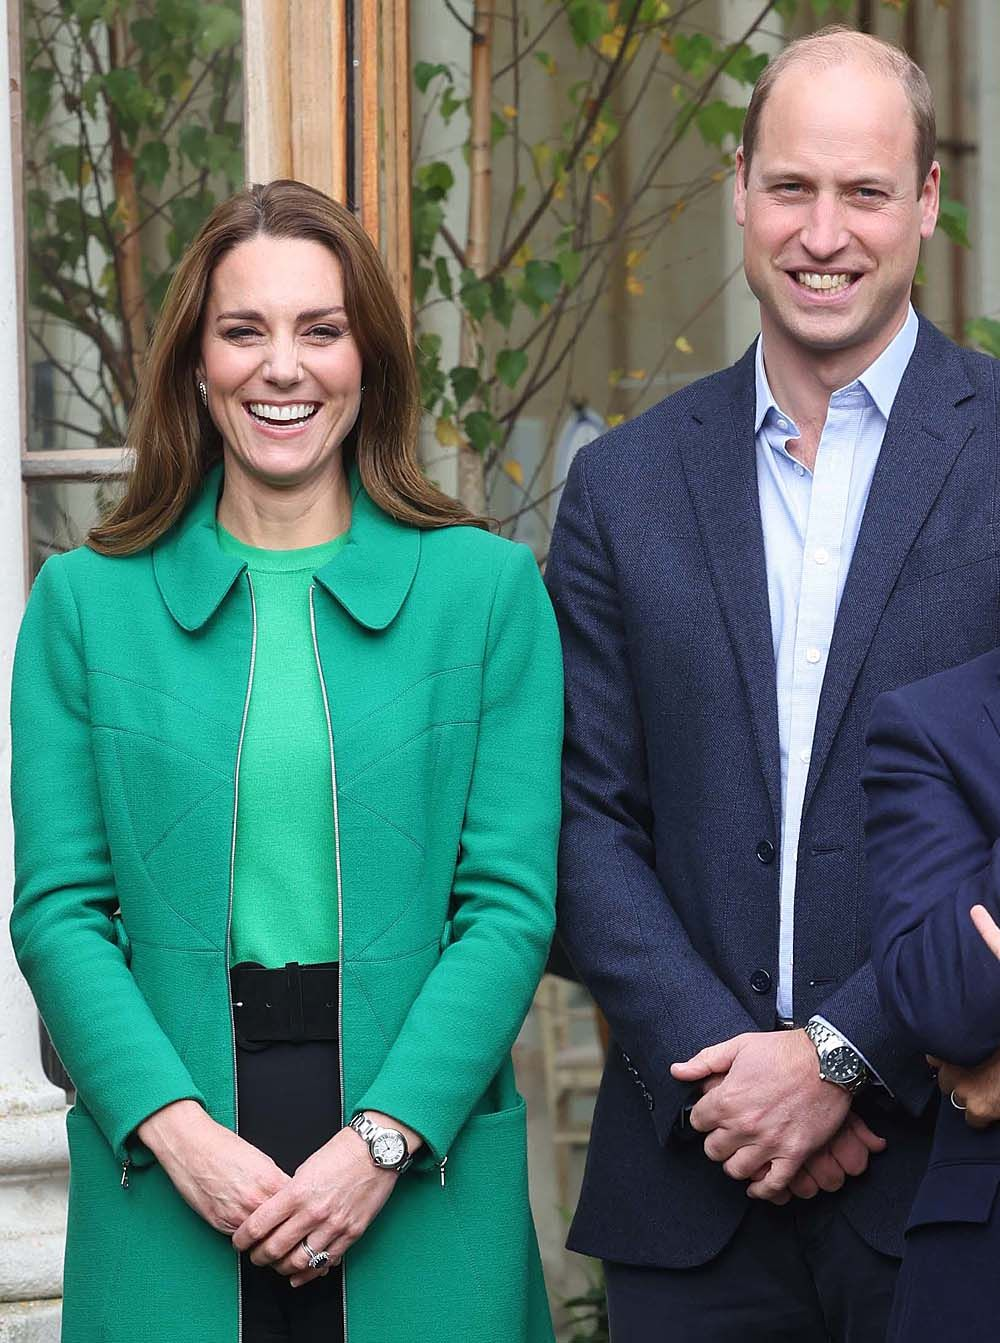 Kate Middleton and Prince William 'snogged' backstage at awards show says attendee